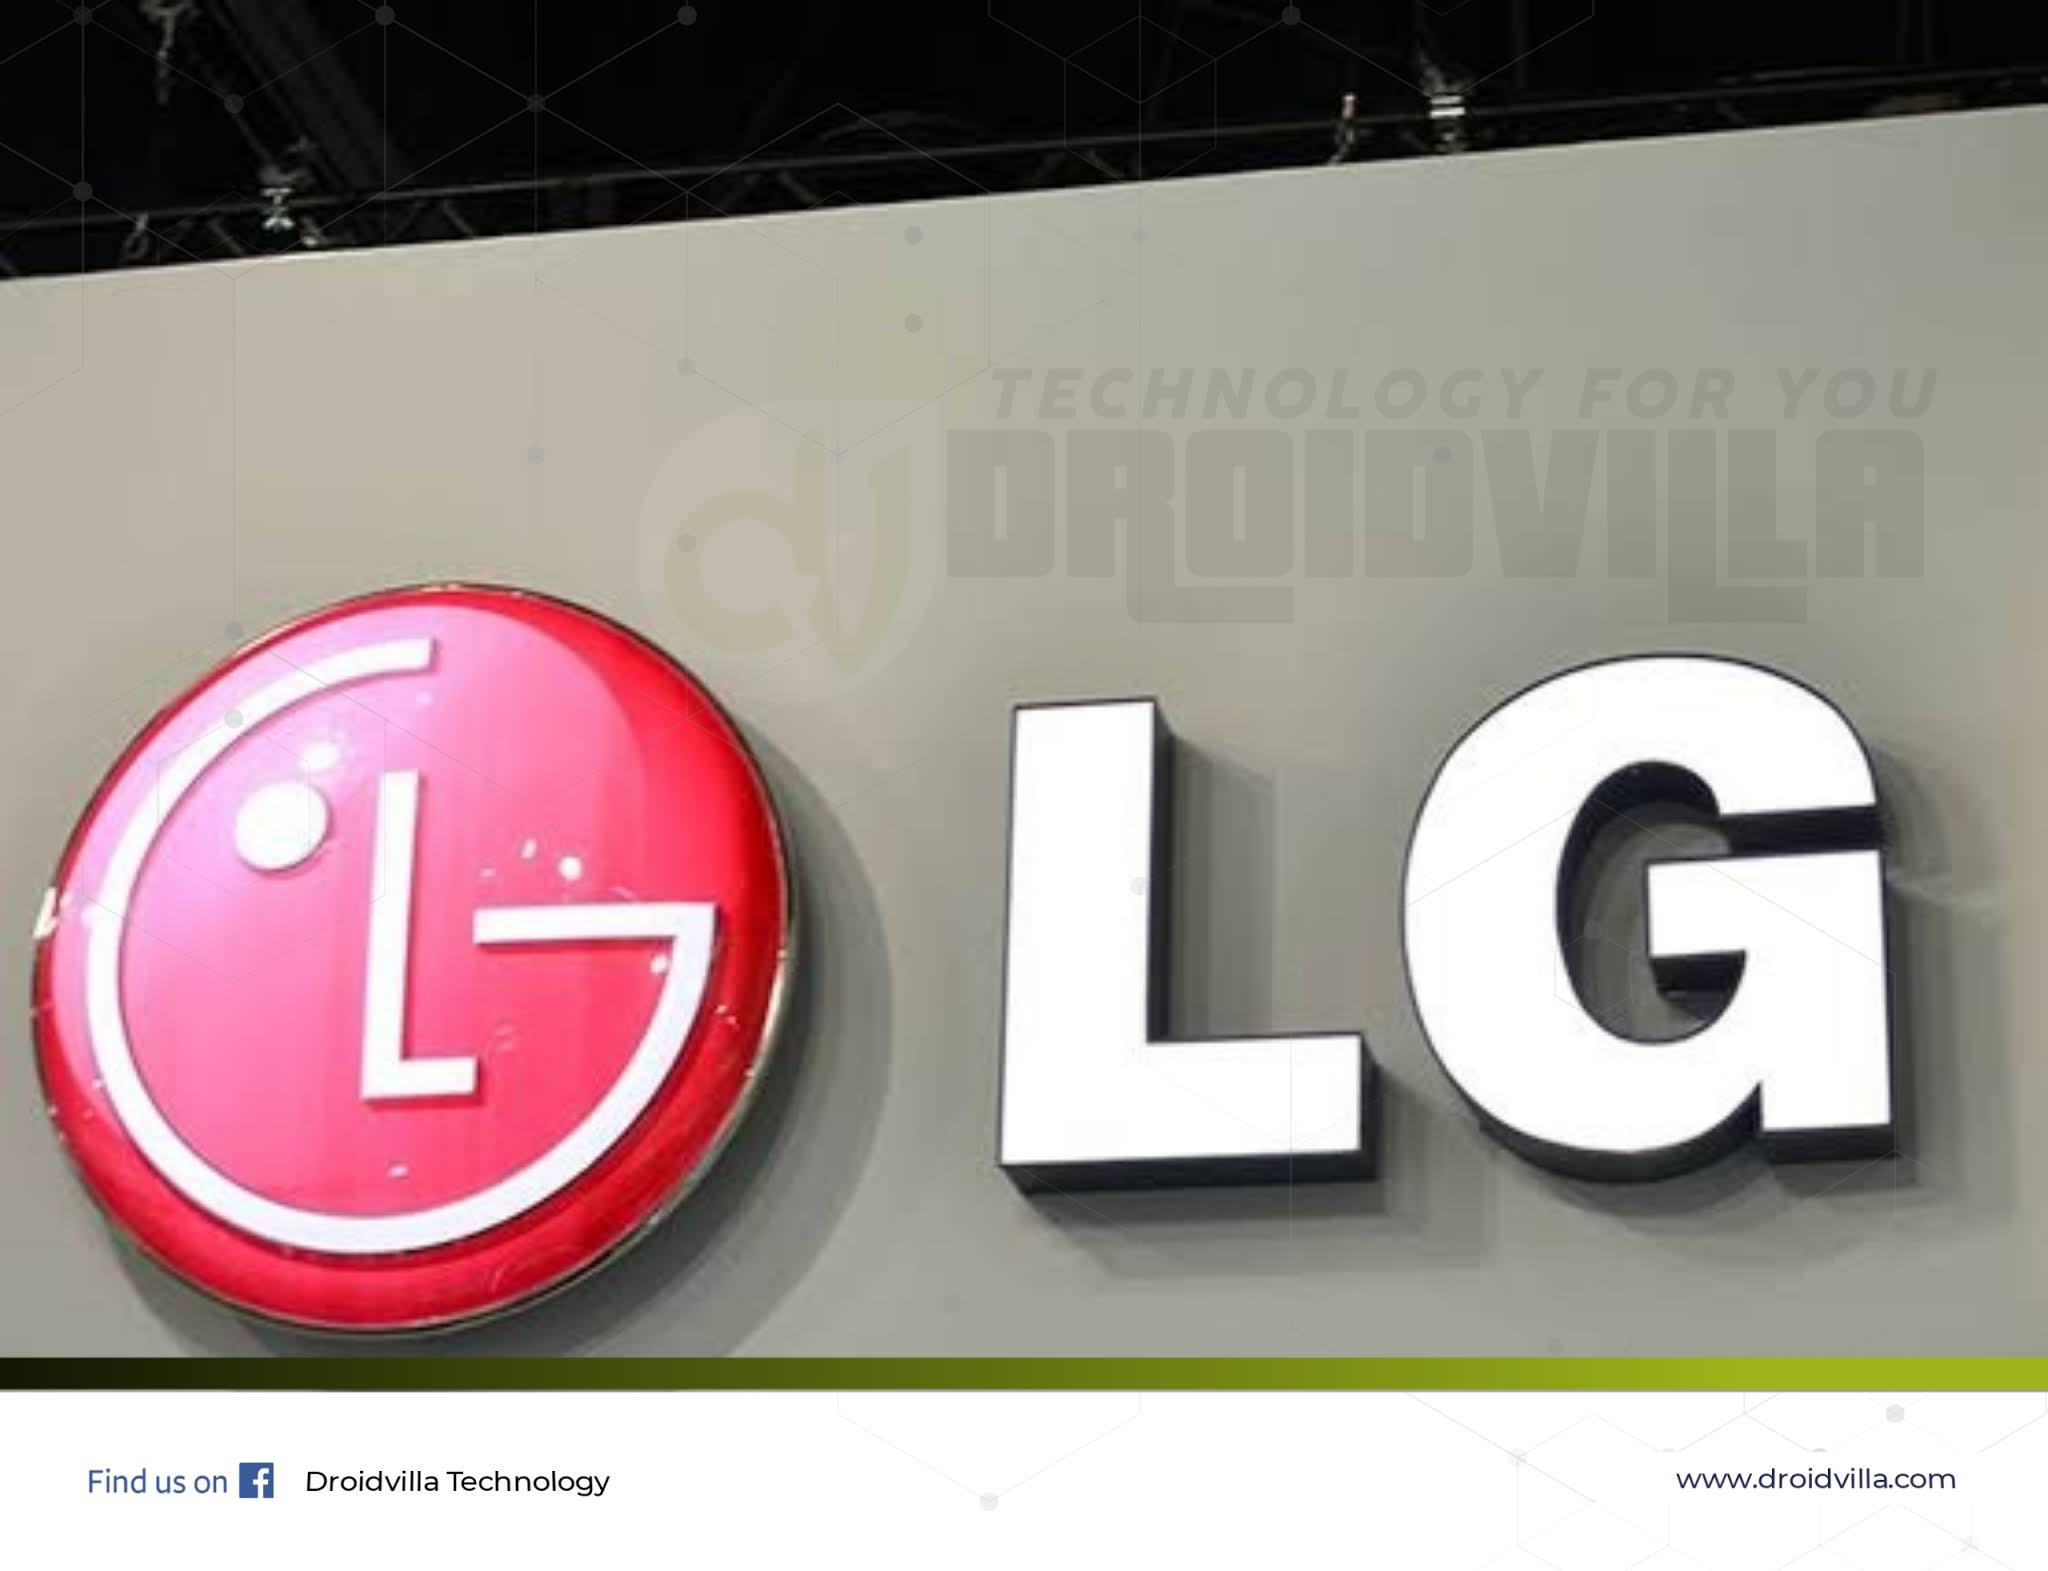 Lg backs out of mobile phones production due to losses